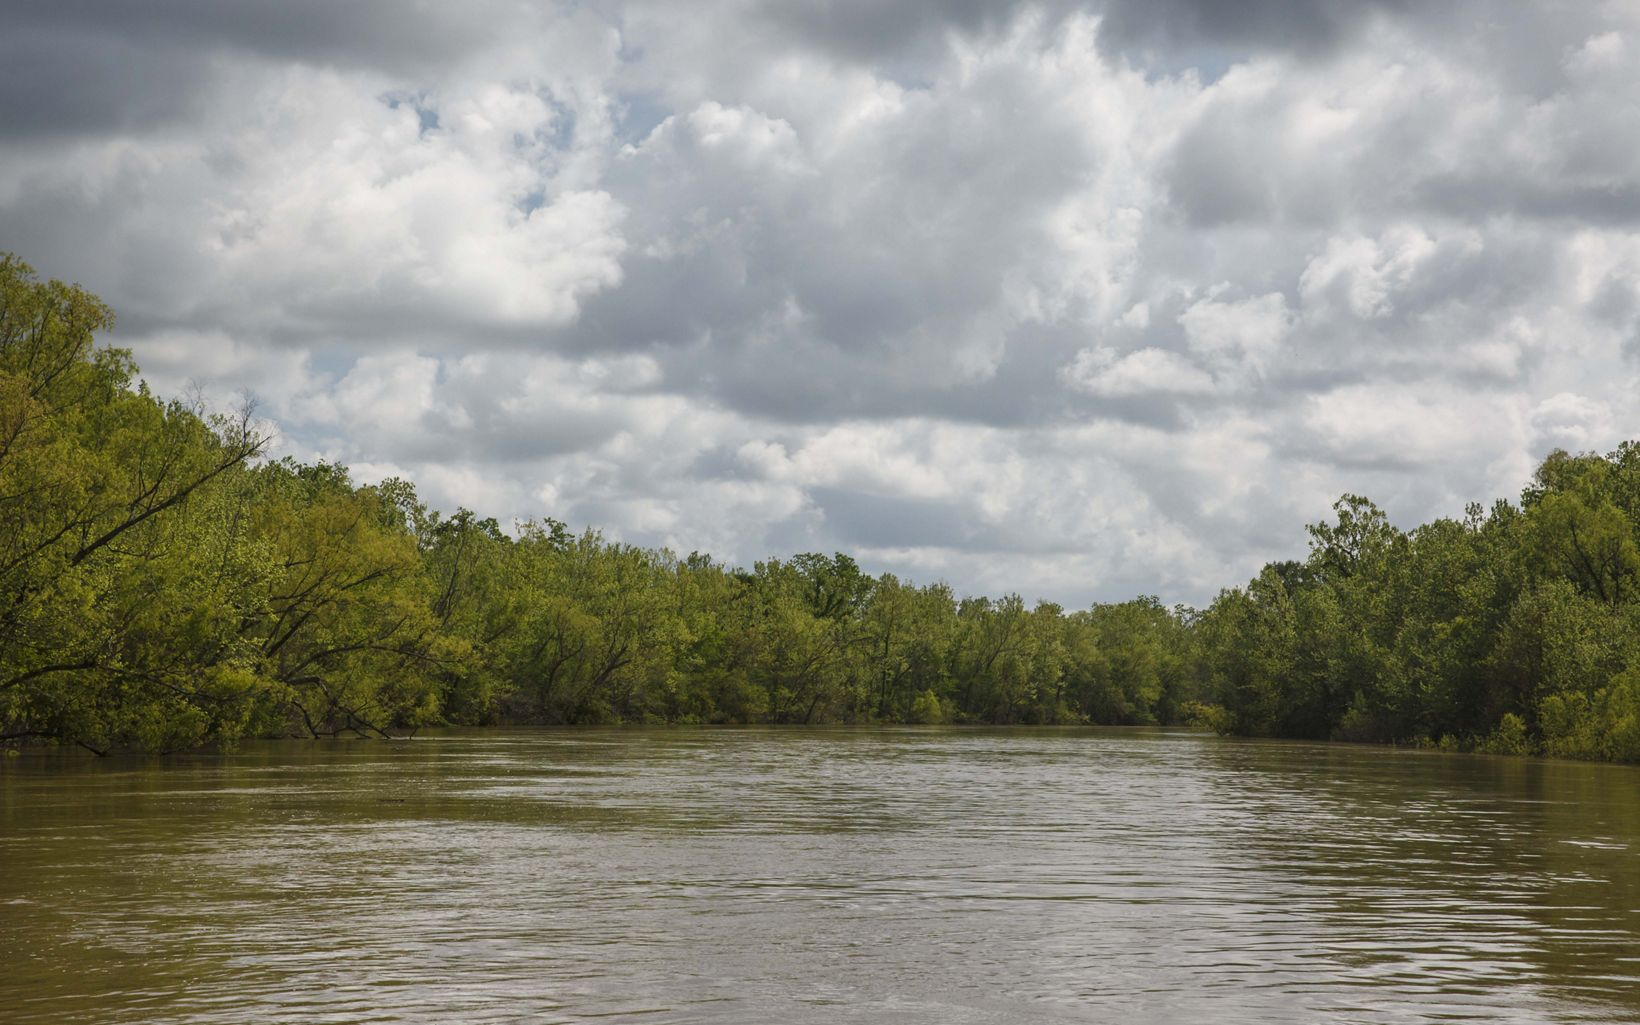 Calm, brown waters of the Atchafalaya River Basin